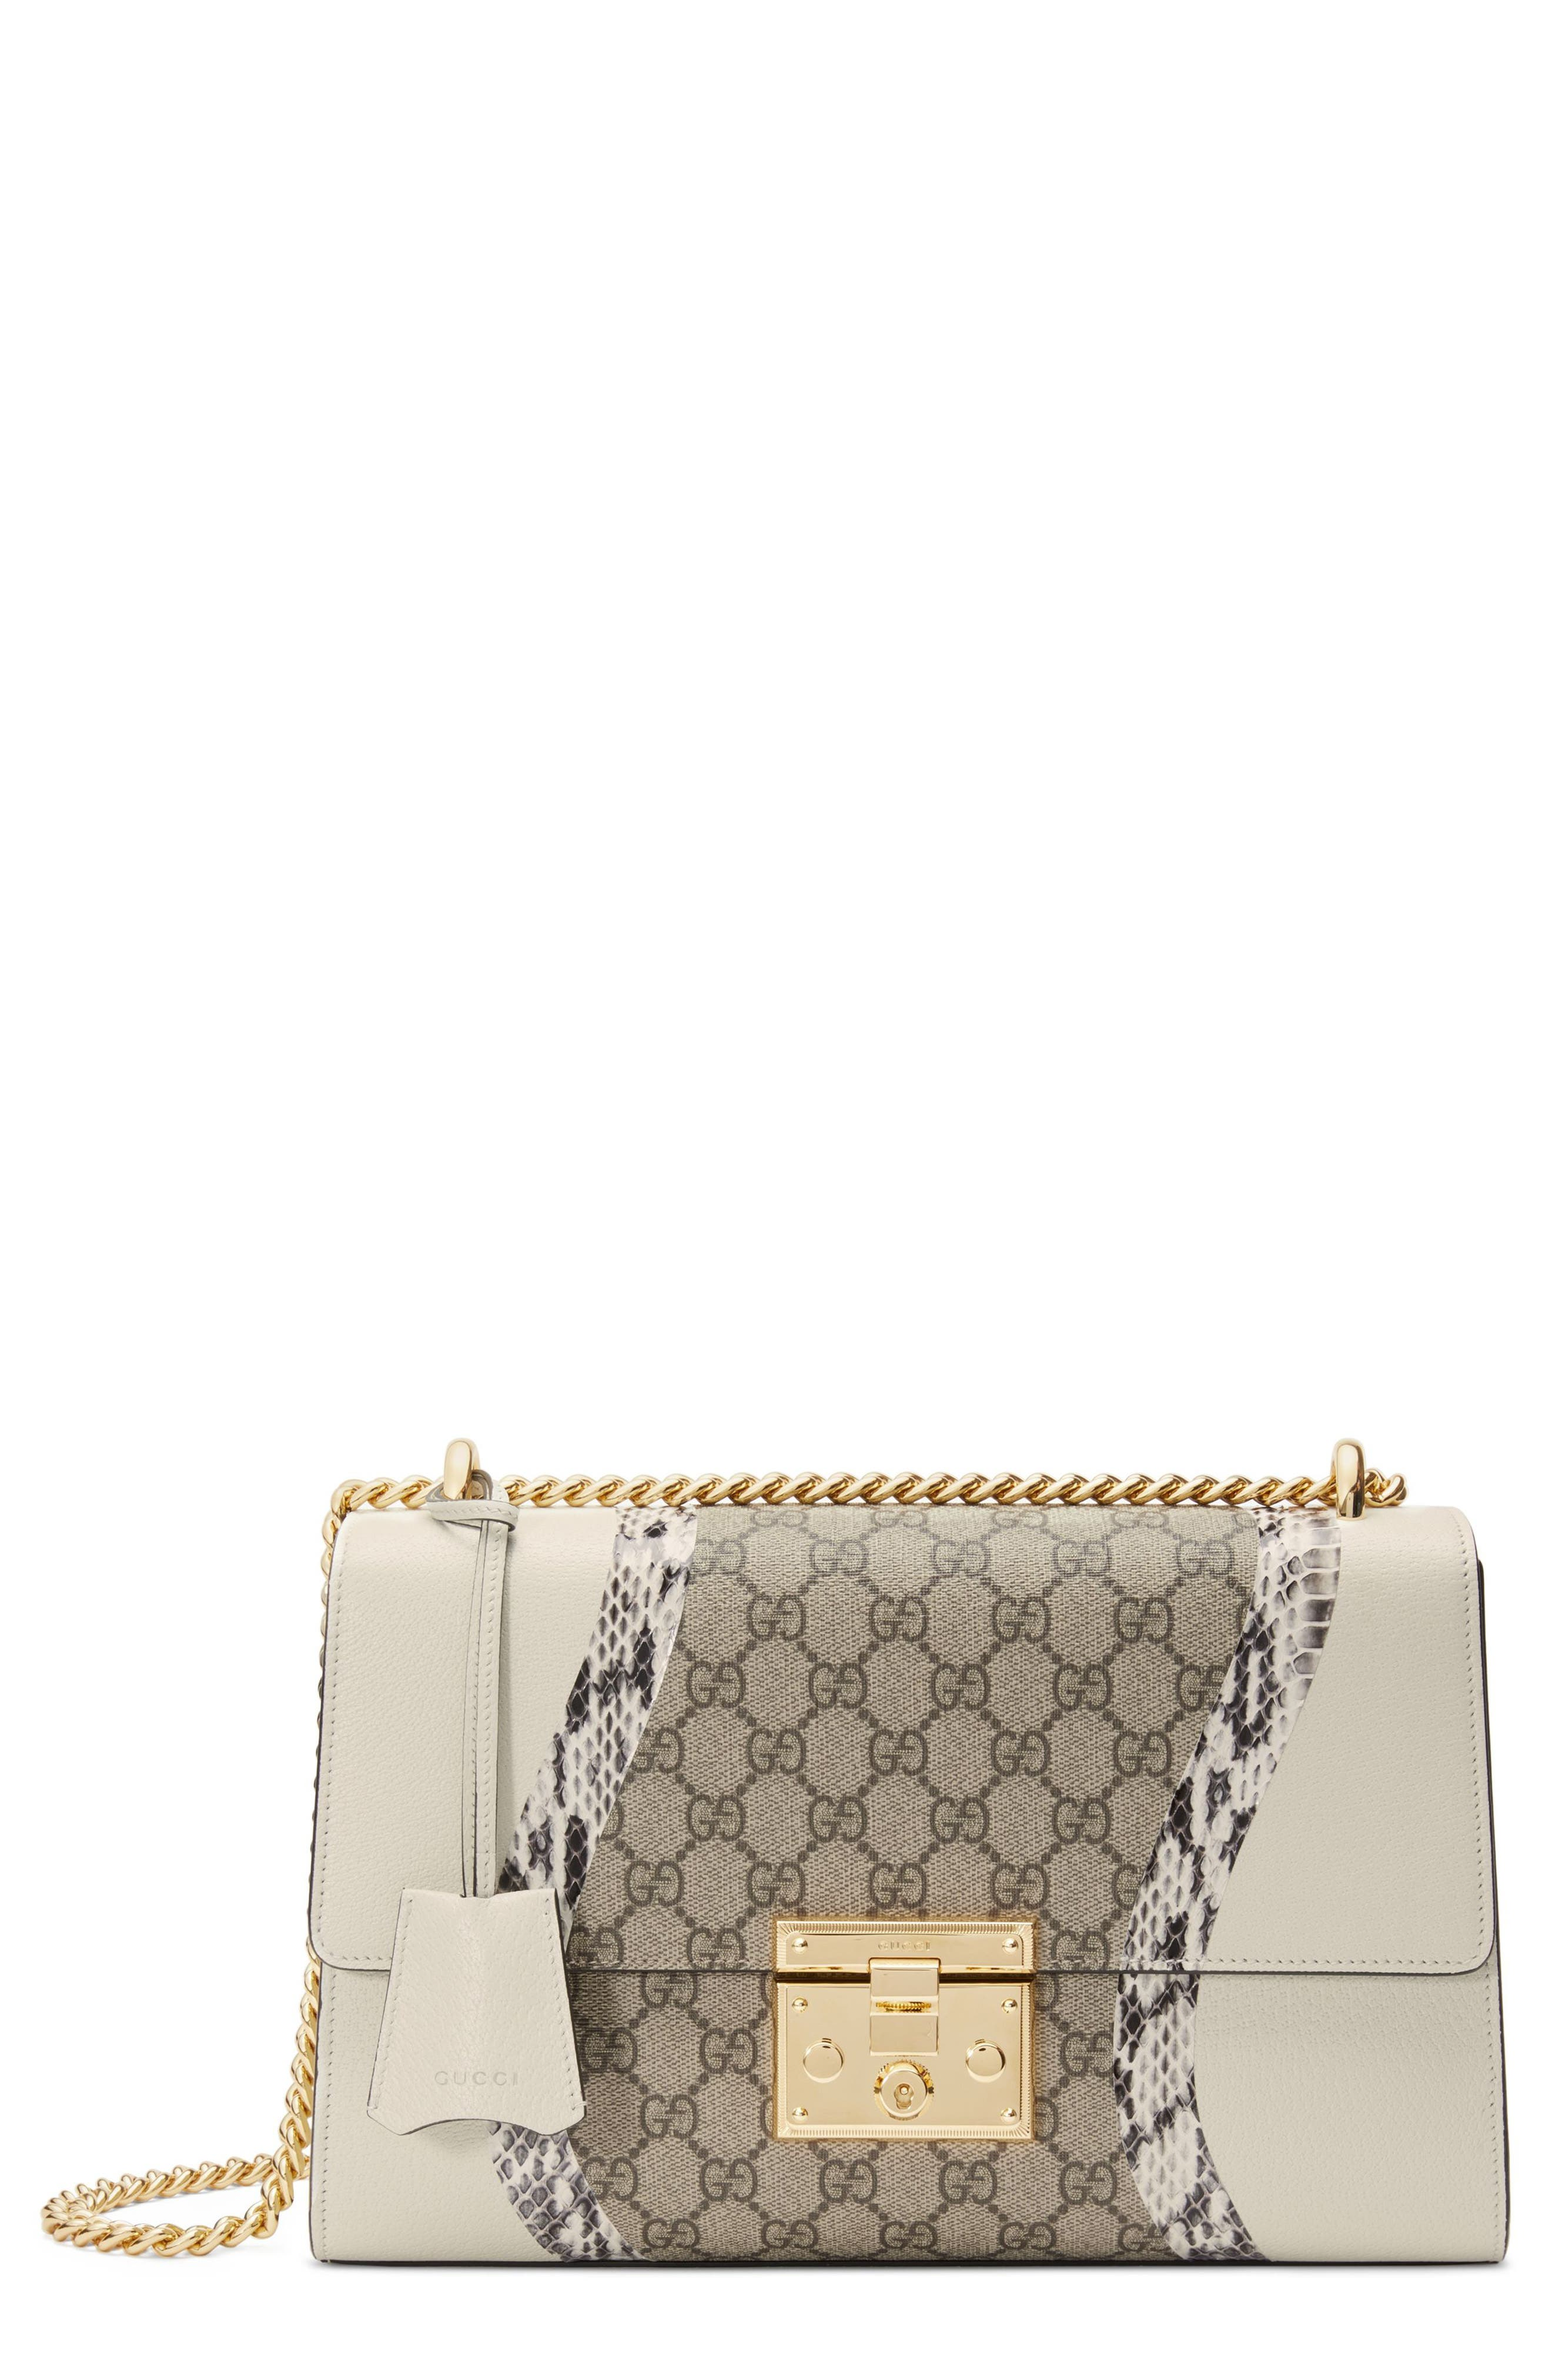 Medium Padlock GG Supreme Wave Shoulder Bag with Genuine Snakeskin Trim,                             Main thumbnail 1, color,                             White/ Roccia/ Beige Ebony